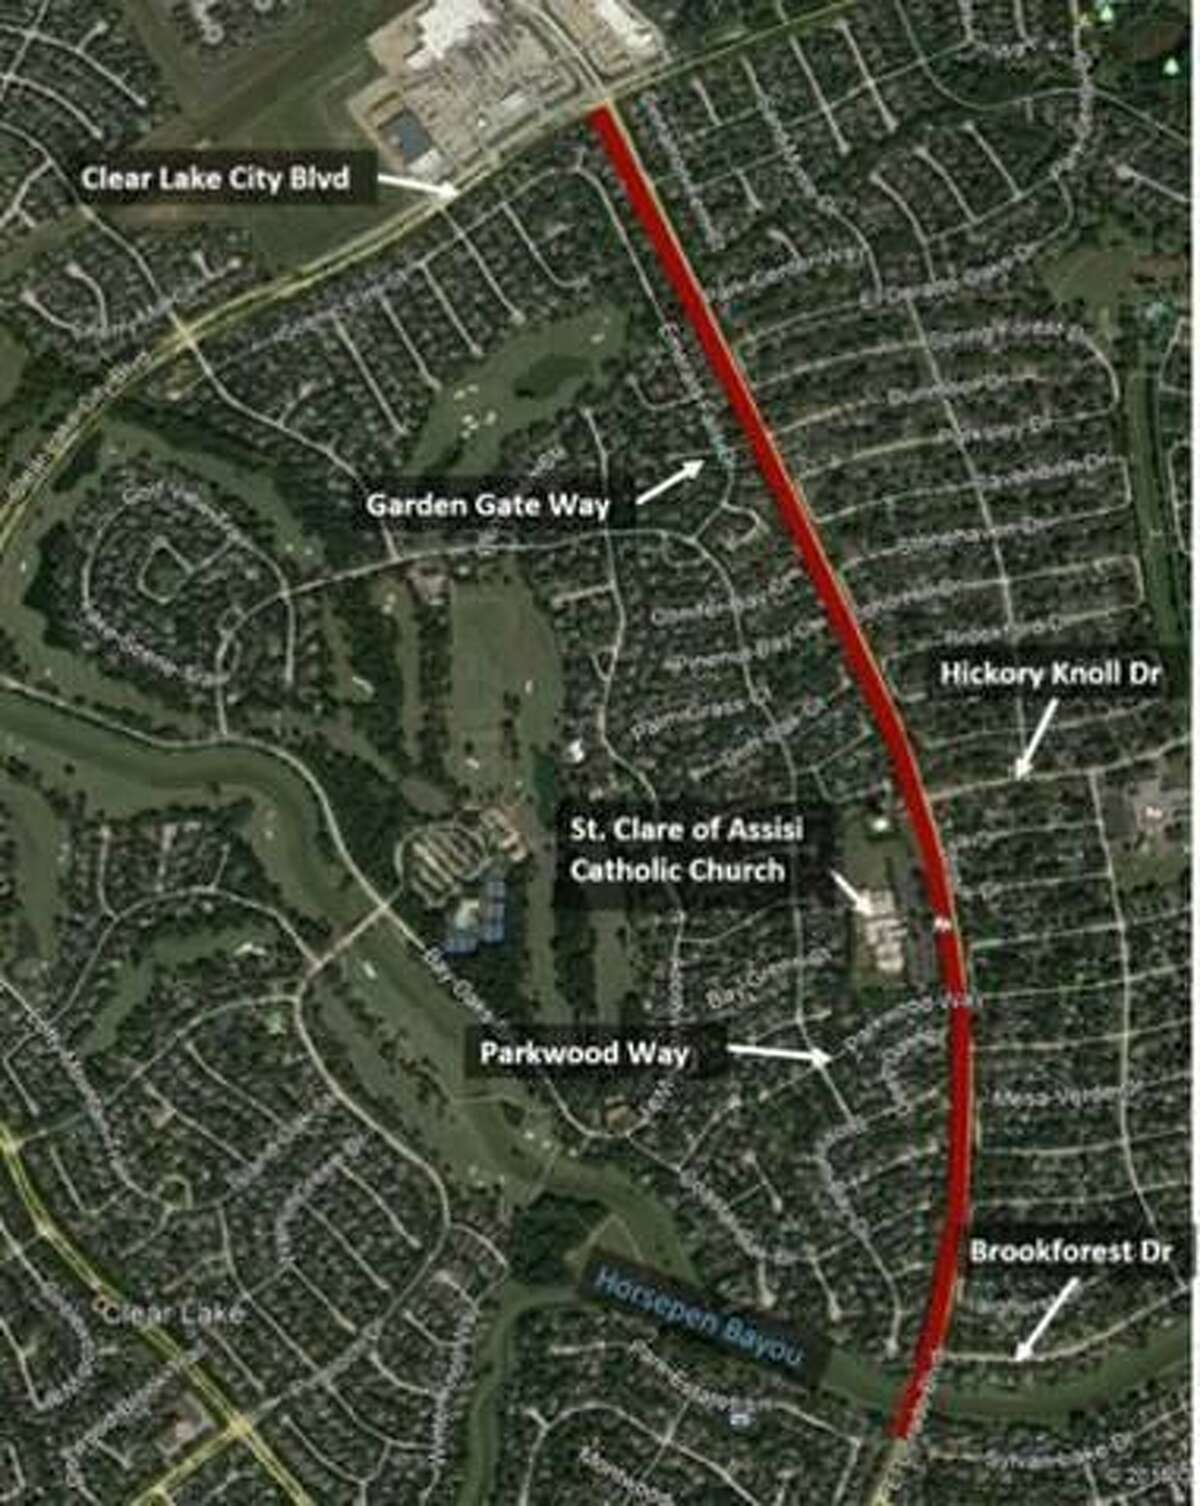 The project will widen El Dorado Boulevard from two to four lanes from Horsepen Bayou to Clear Lake City Boulevard.